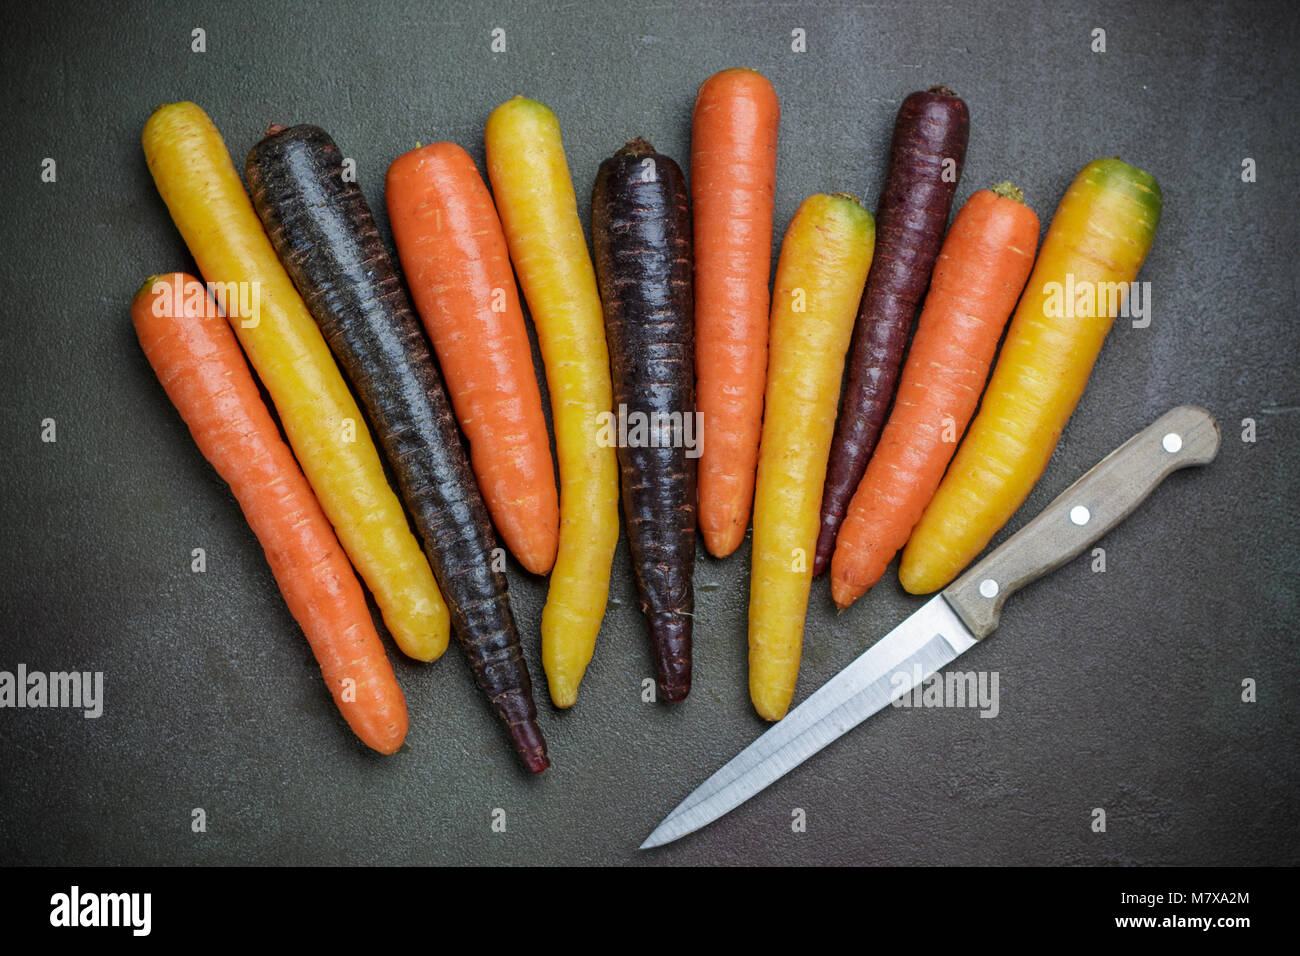 Colorful vegetables. Organic colored yellow, red, orange and purple carrots on the dark stone surface. Rustic style - Stock Image